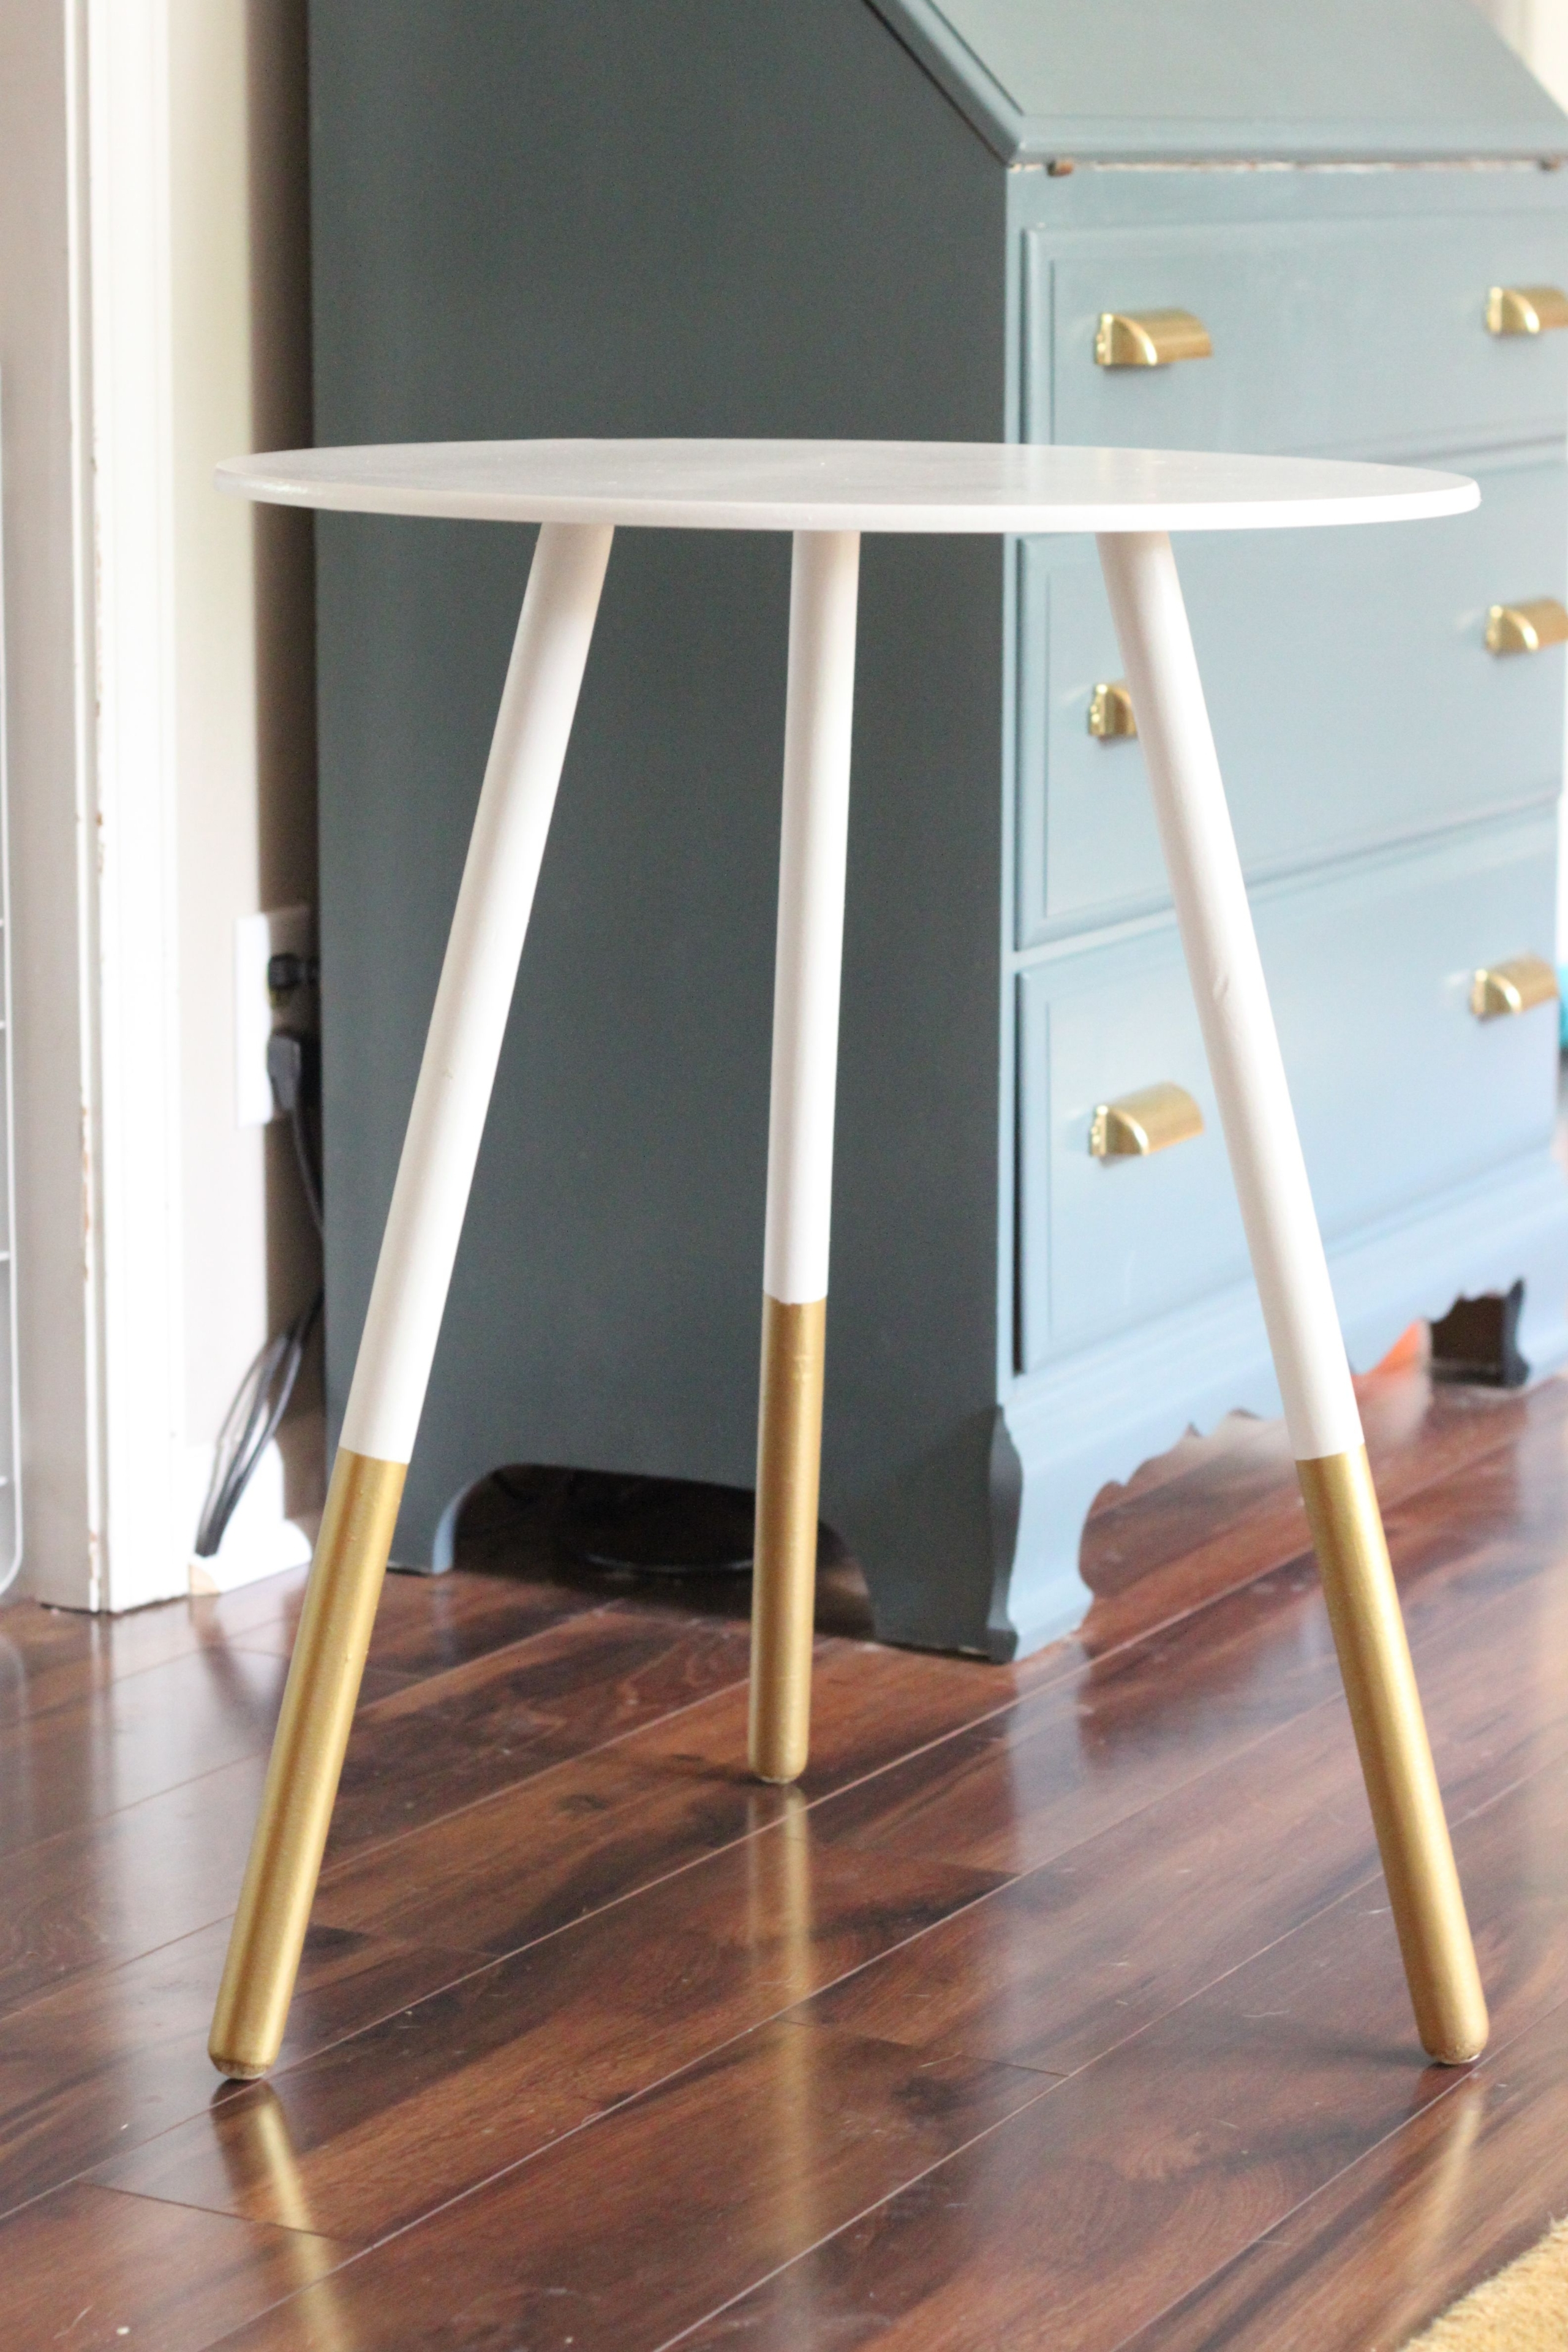 Picture of: Ikea Accent Table Ideas On Foter